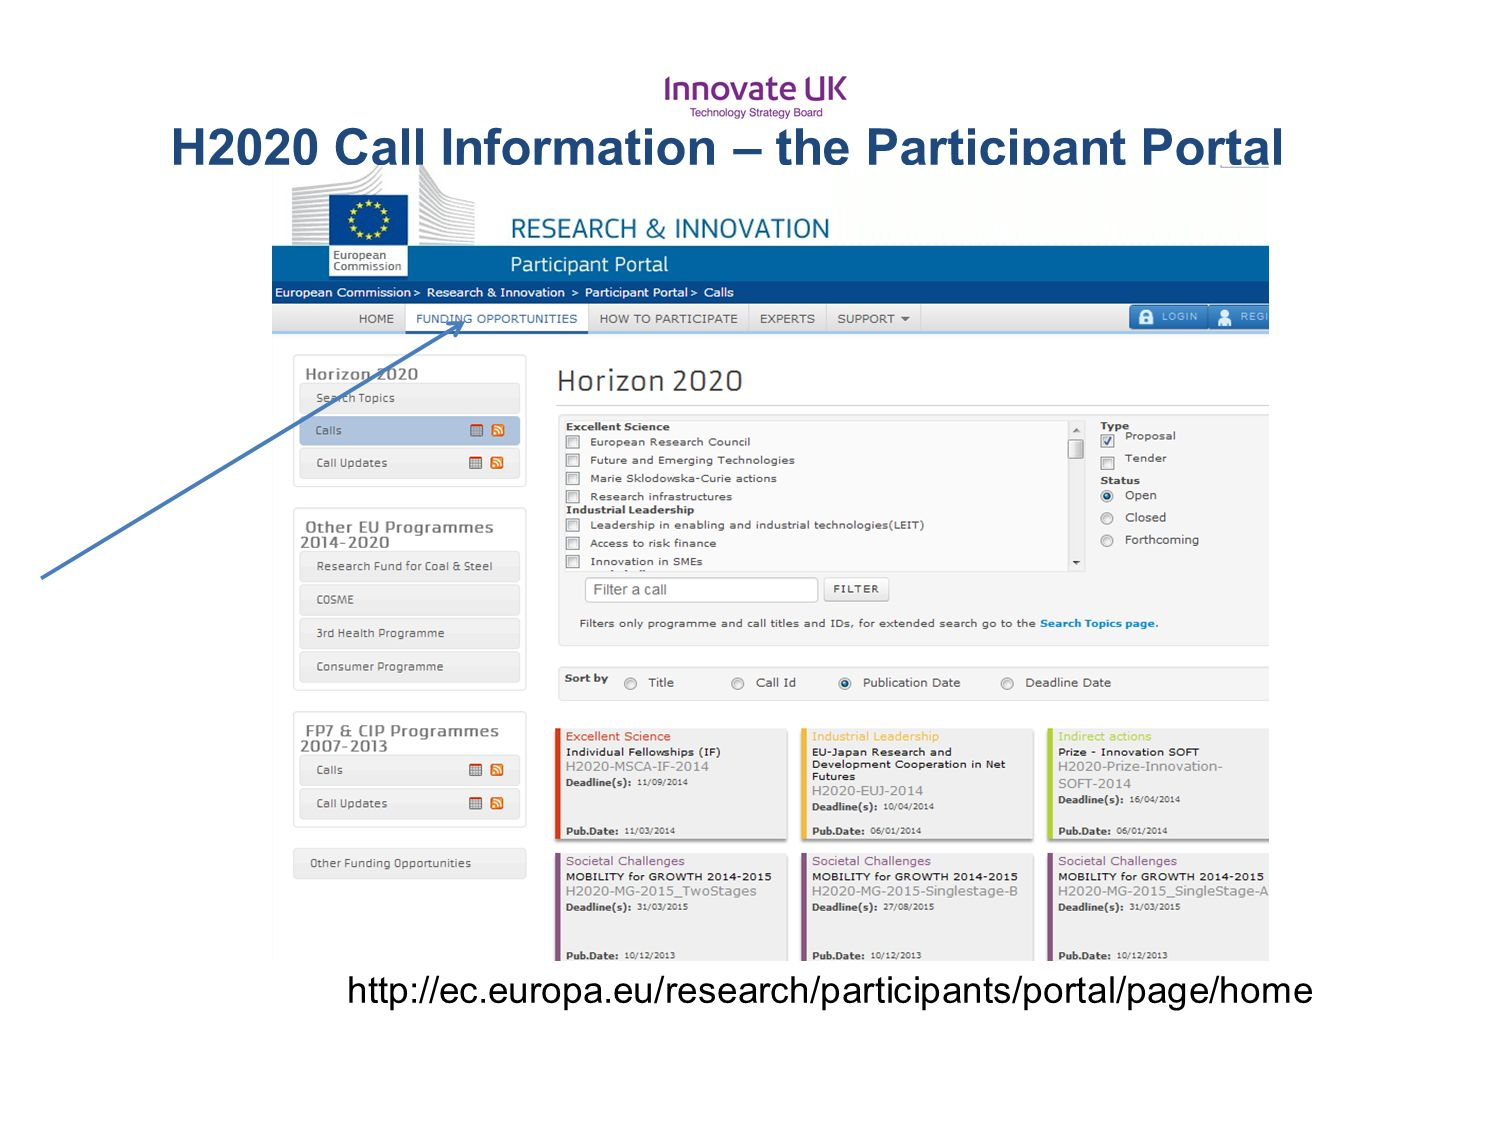 H2020 Call Information – the Participant Portal